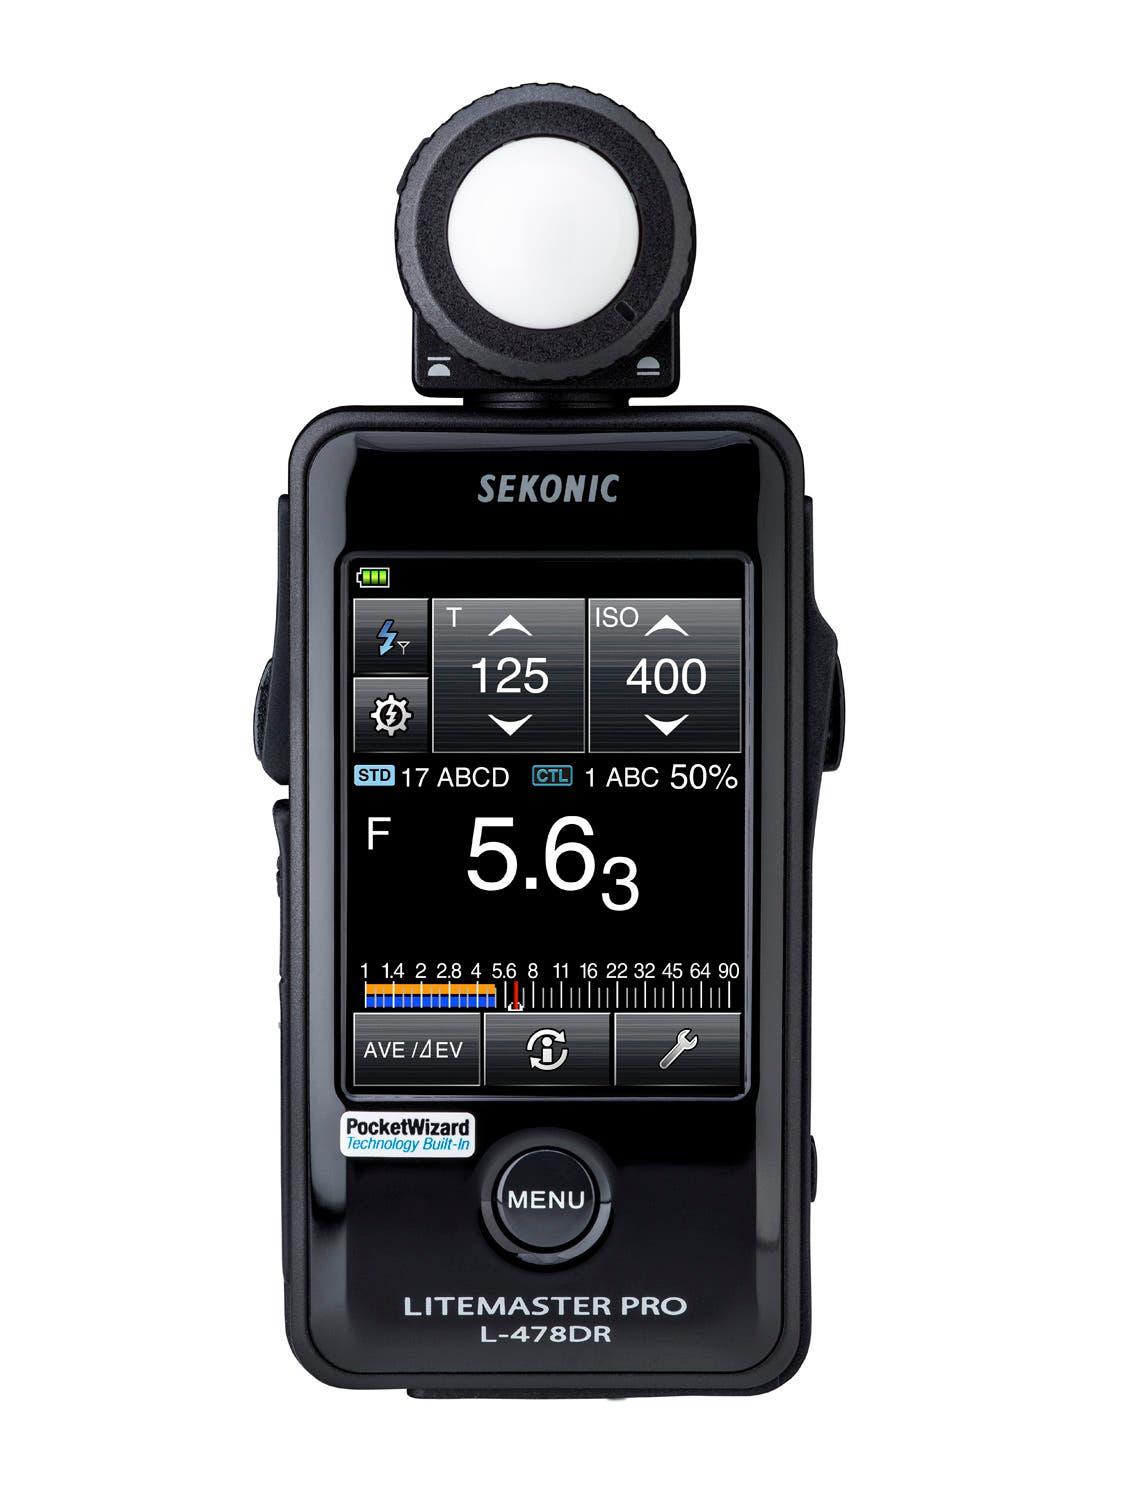 Sekonic's New Light Meters Are Sexier Than That Piece of Crap iPhone 5 Announced Yesterday